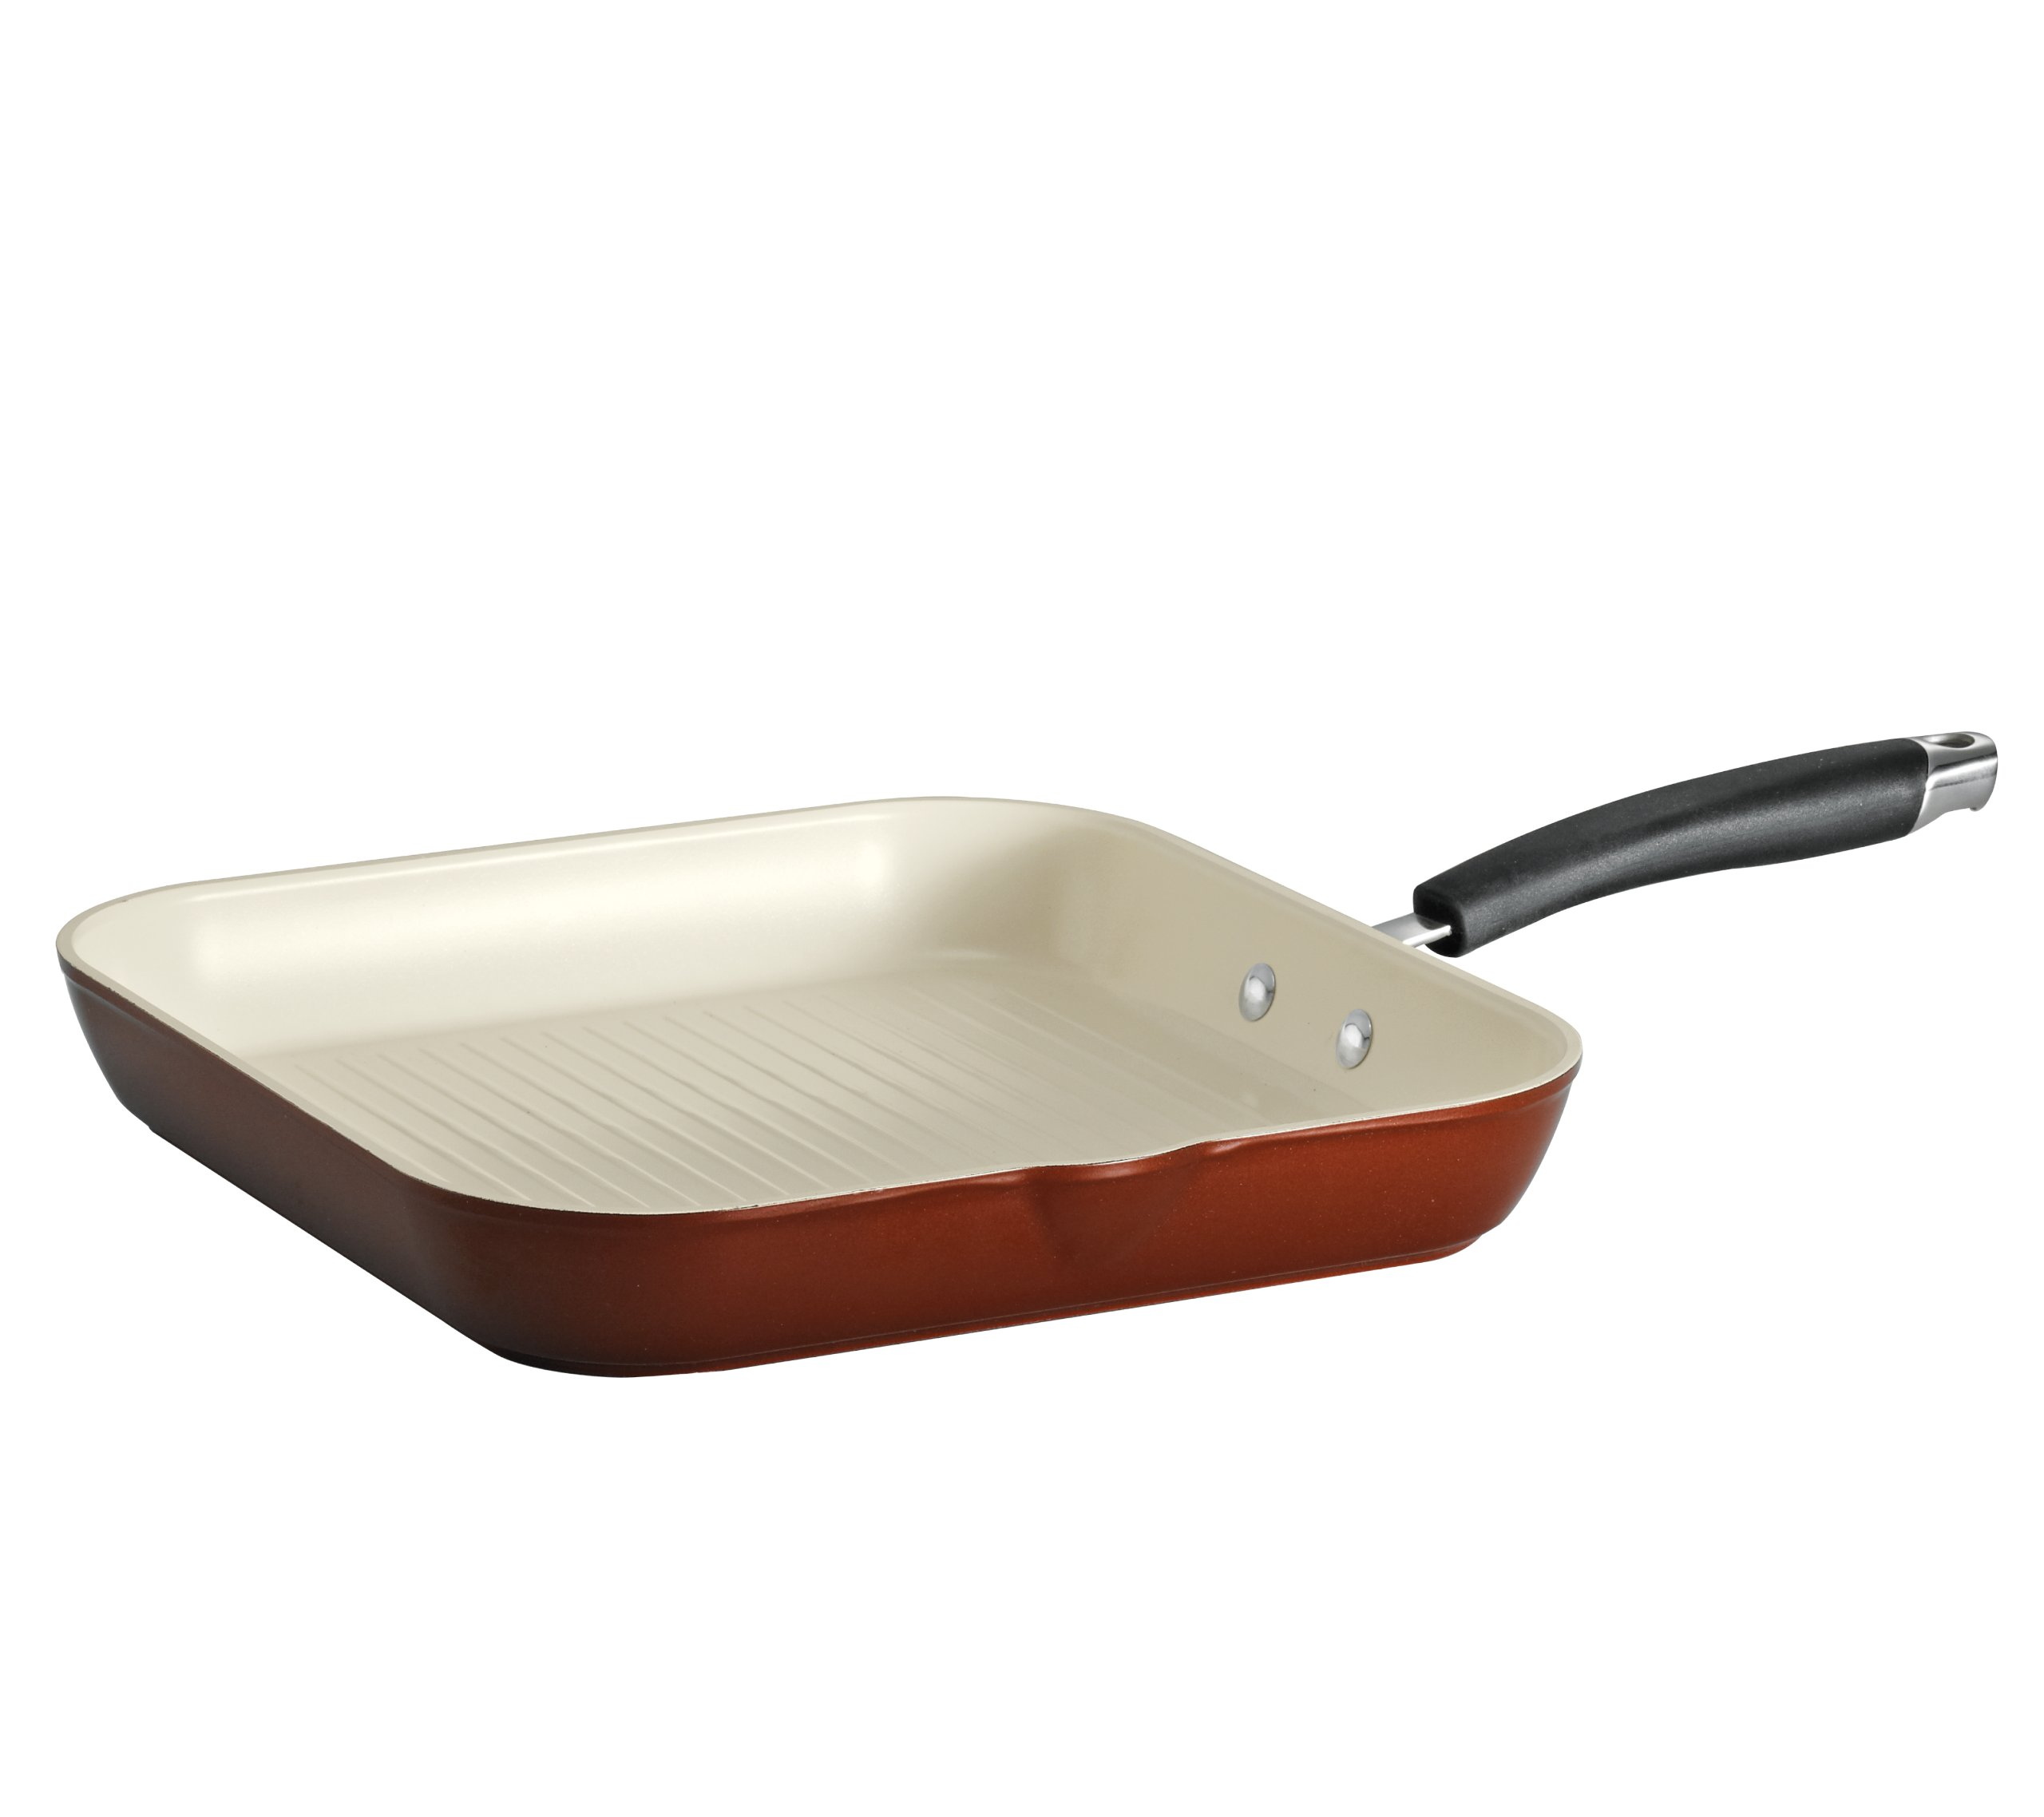 Tramontina 80110/047DS Style Ceramica 01 Square Grill Pan, 11-Inch, Metallic Copper